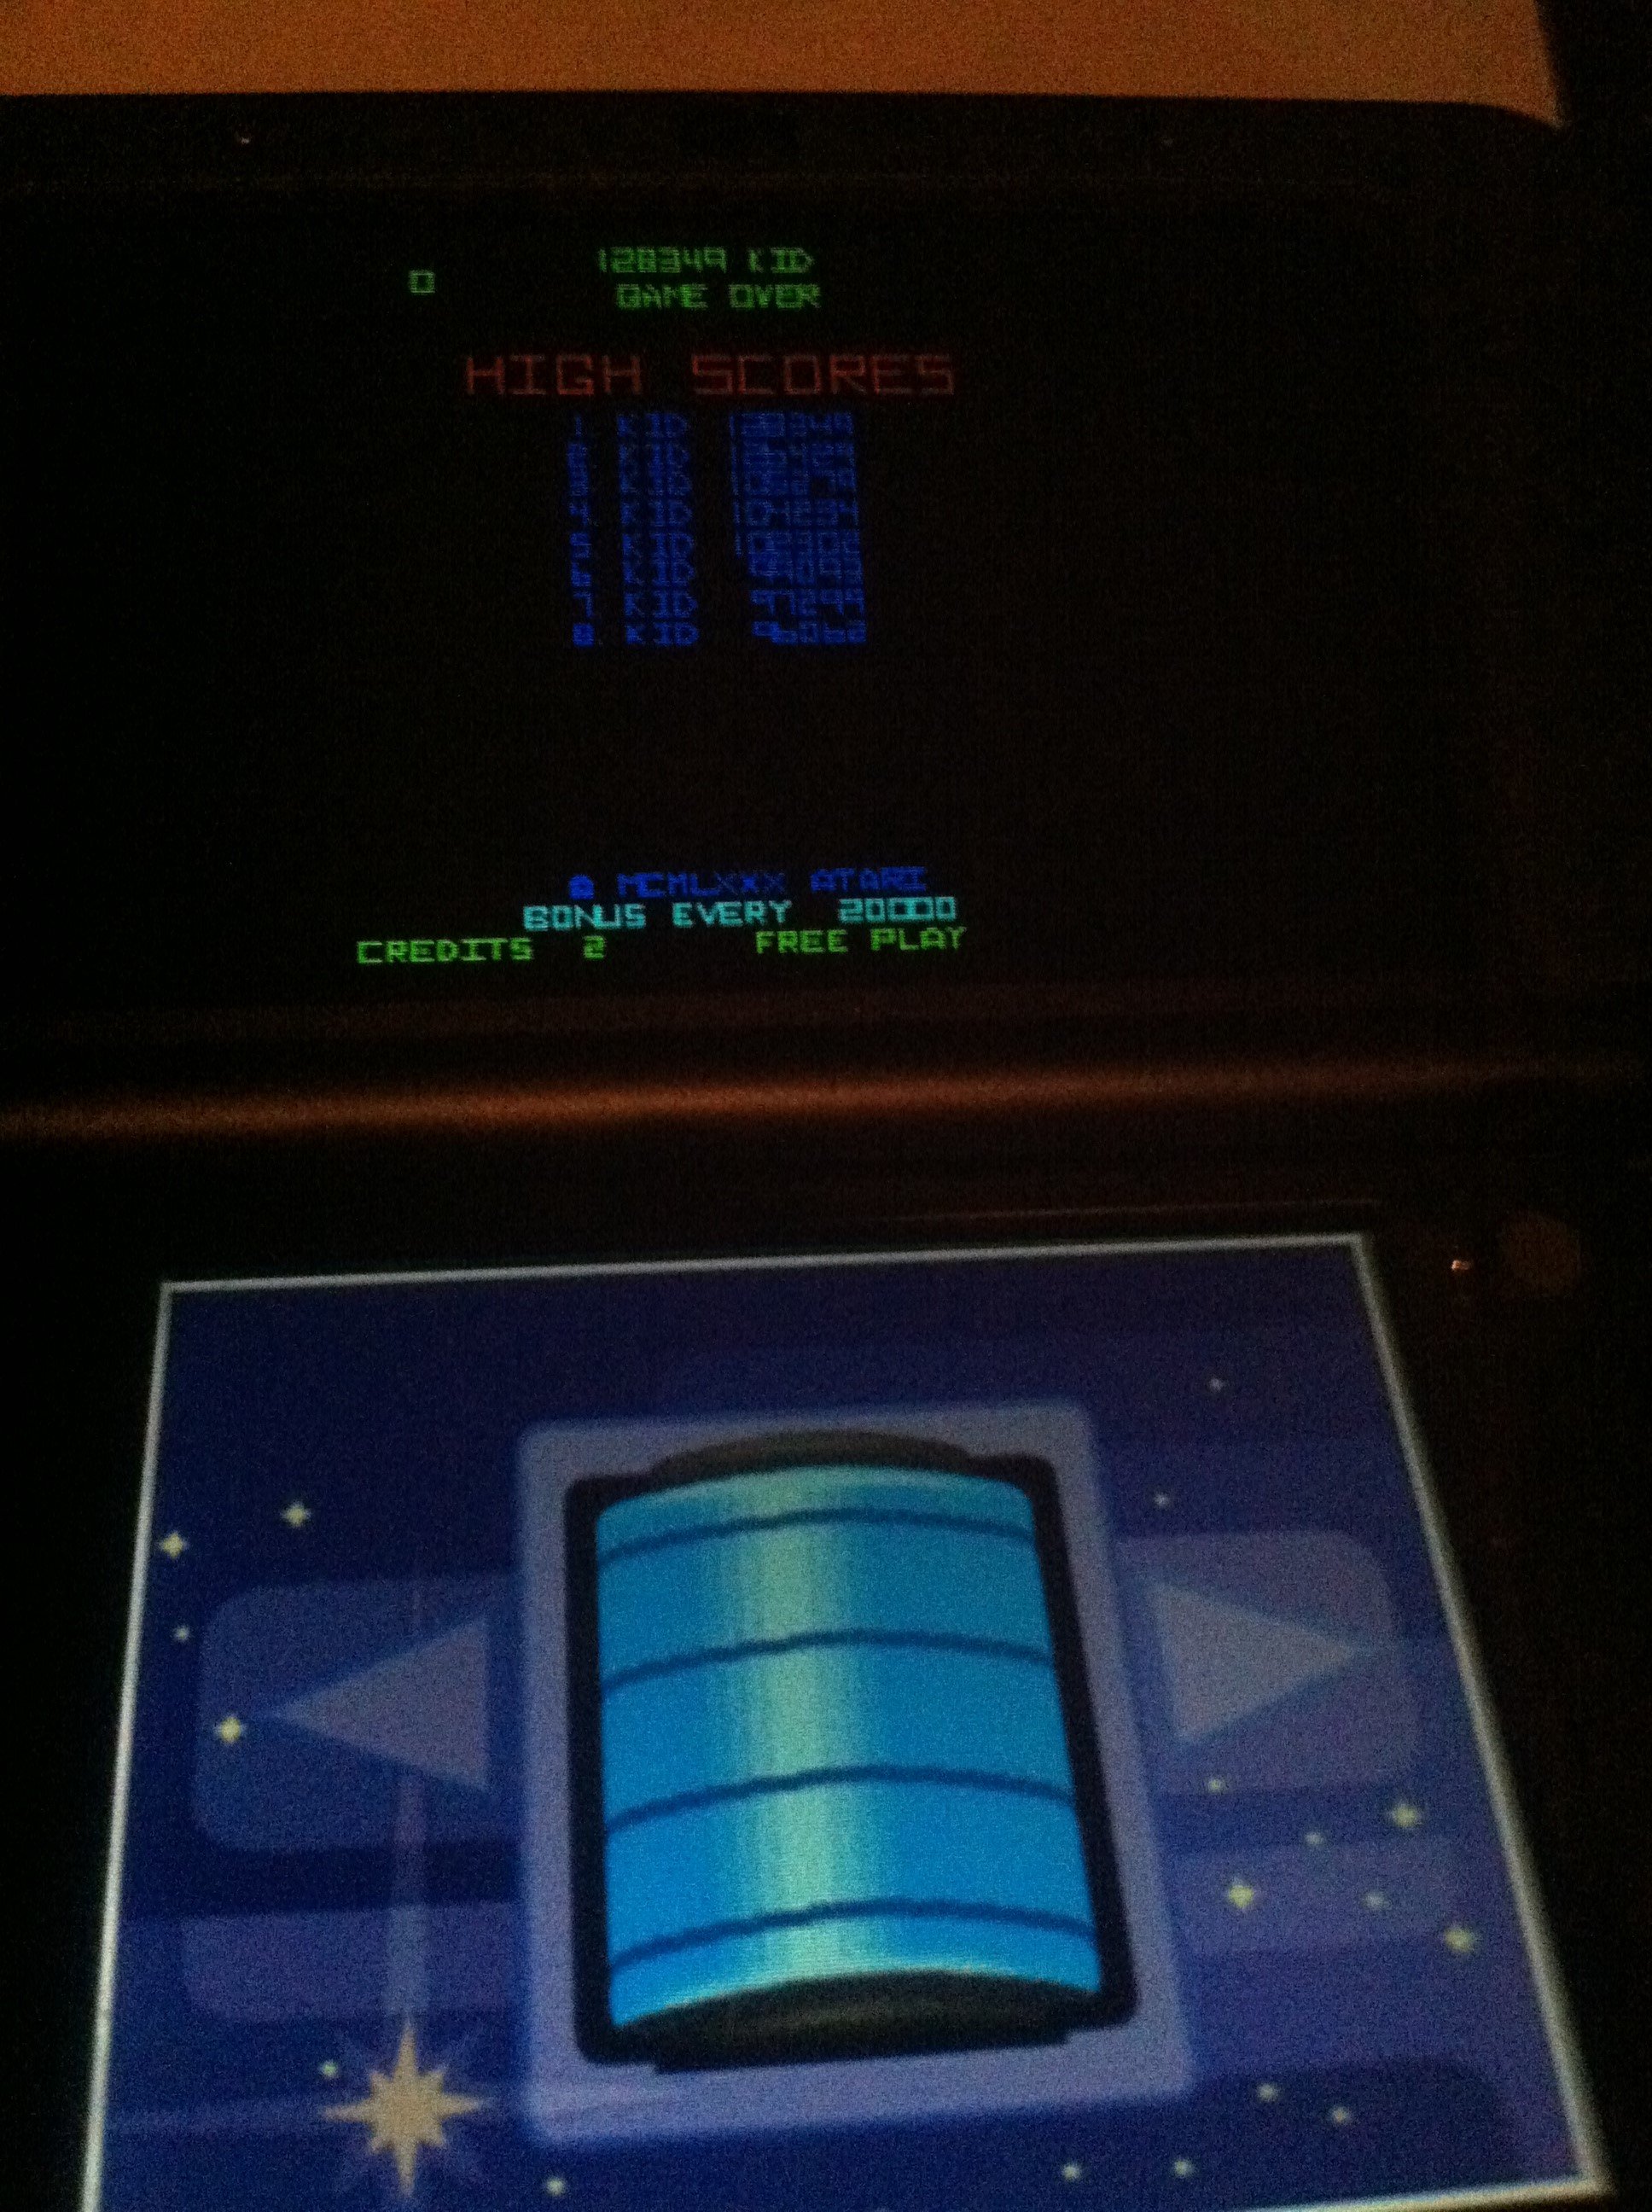 DakotaKid: Atari Greatest Hits: Volume 1: Tempest [Arcade/Level 9 or greater Start] (Nintendo DS) 96,062 points on 2017-09-13 19:58:31